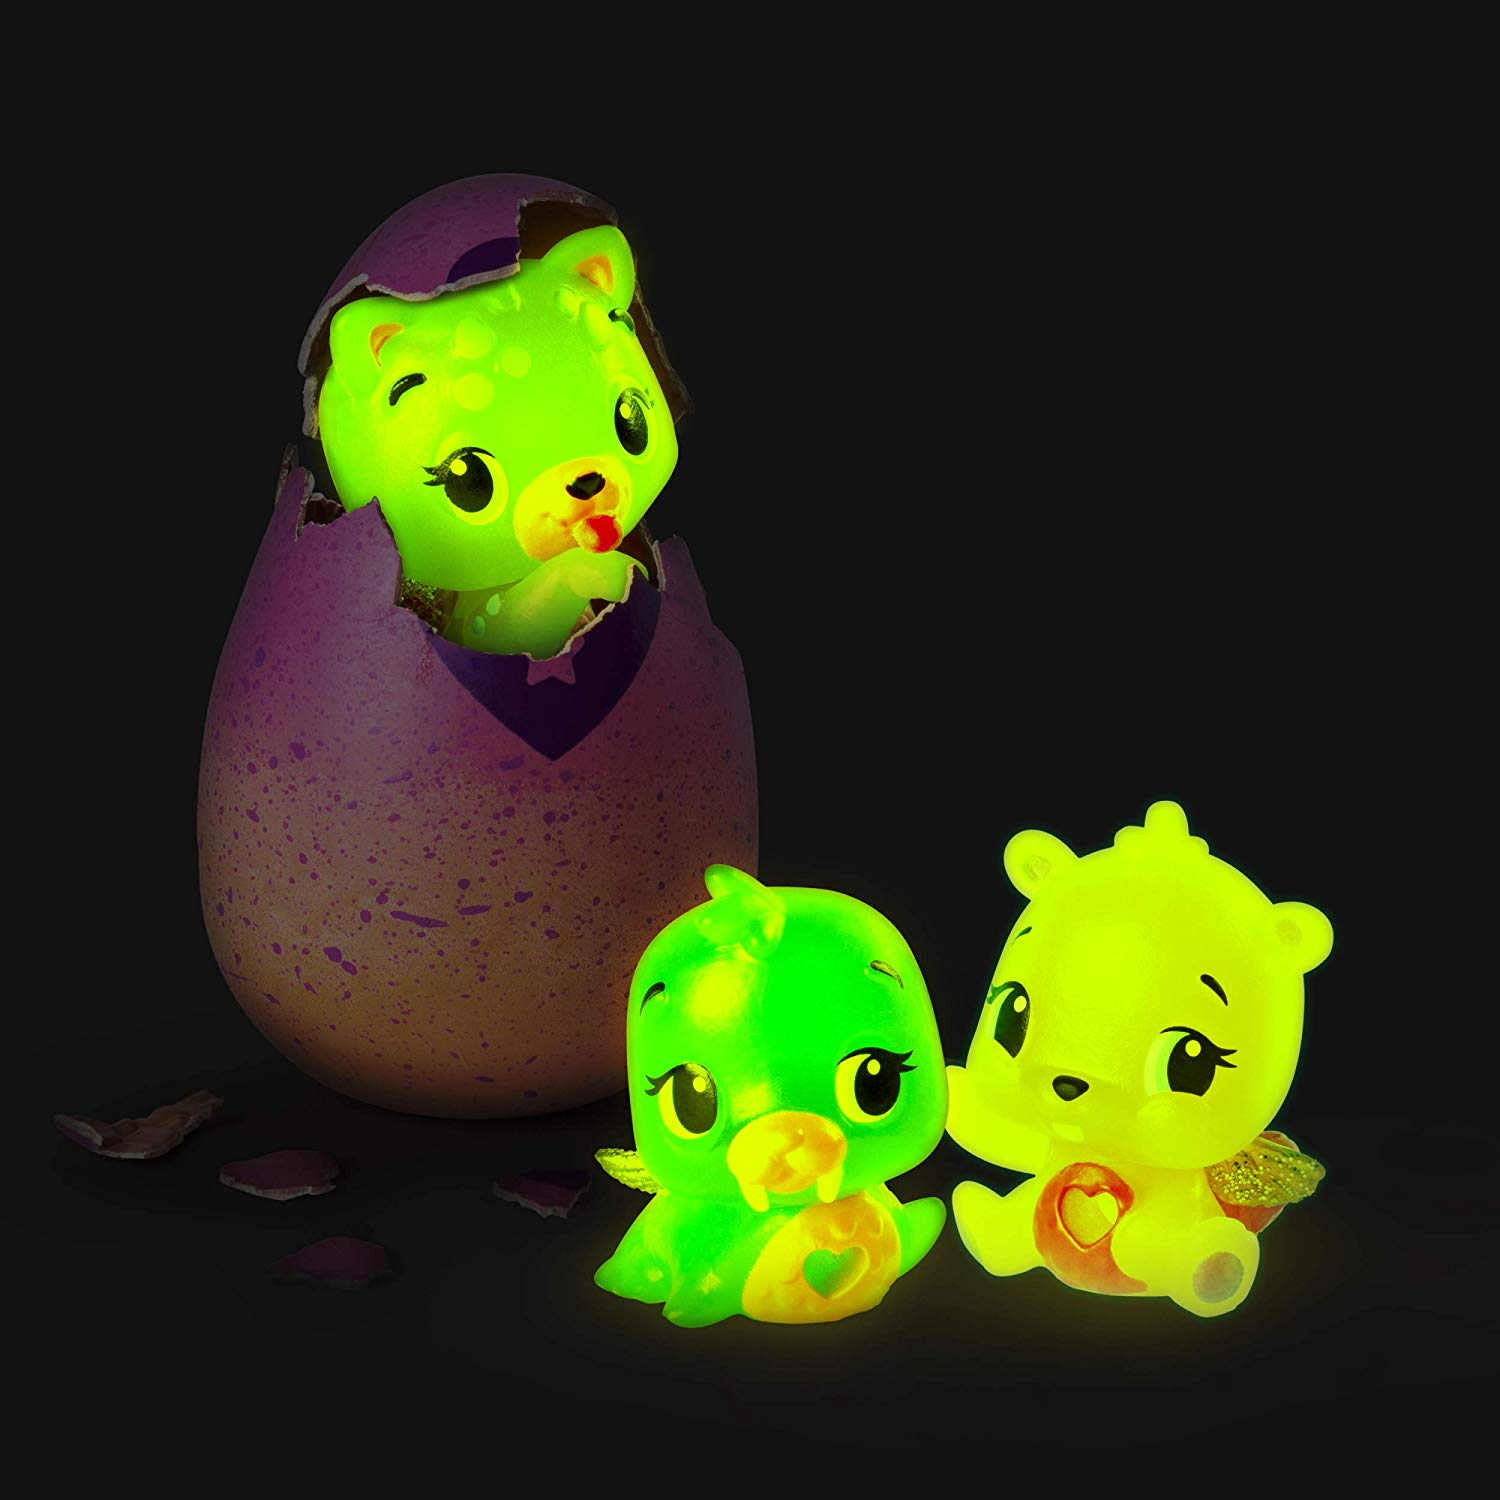 holiday toys that glow: these neon hatchimals are cute